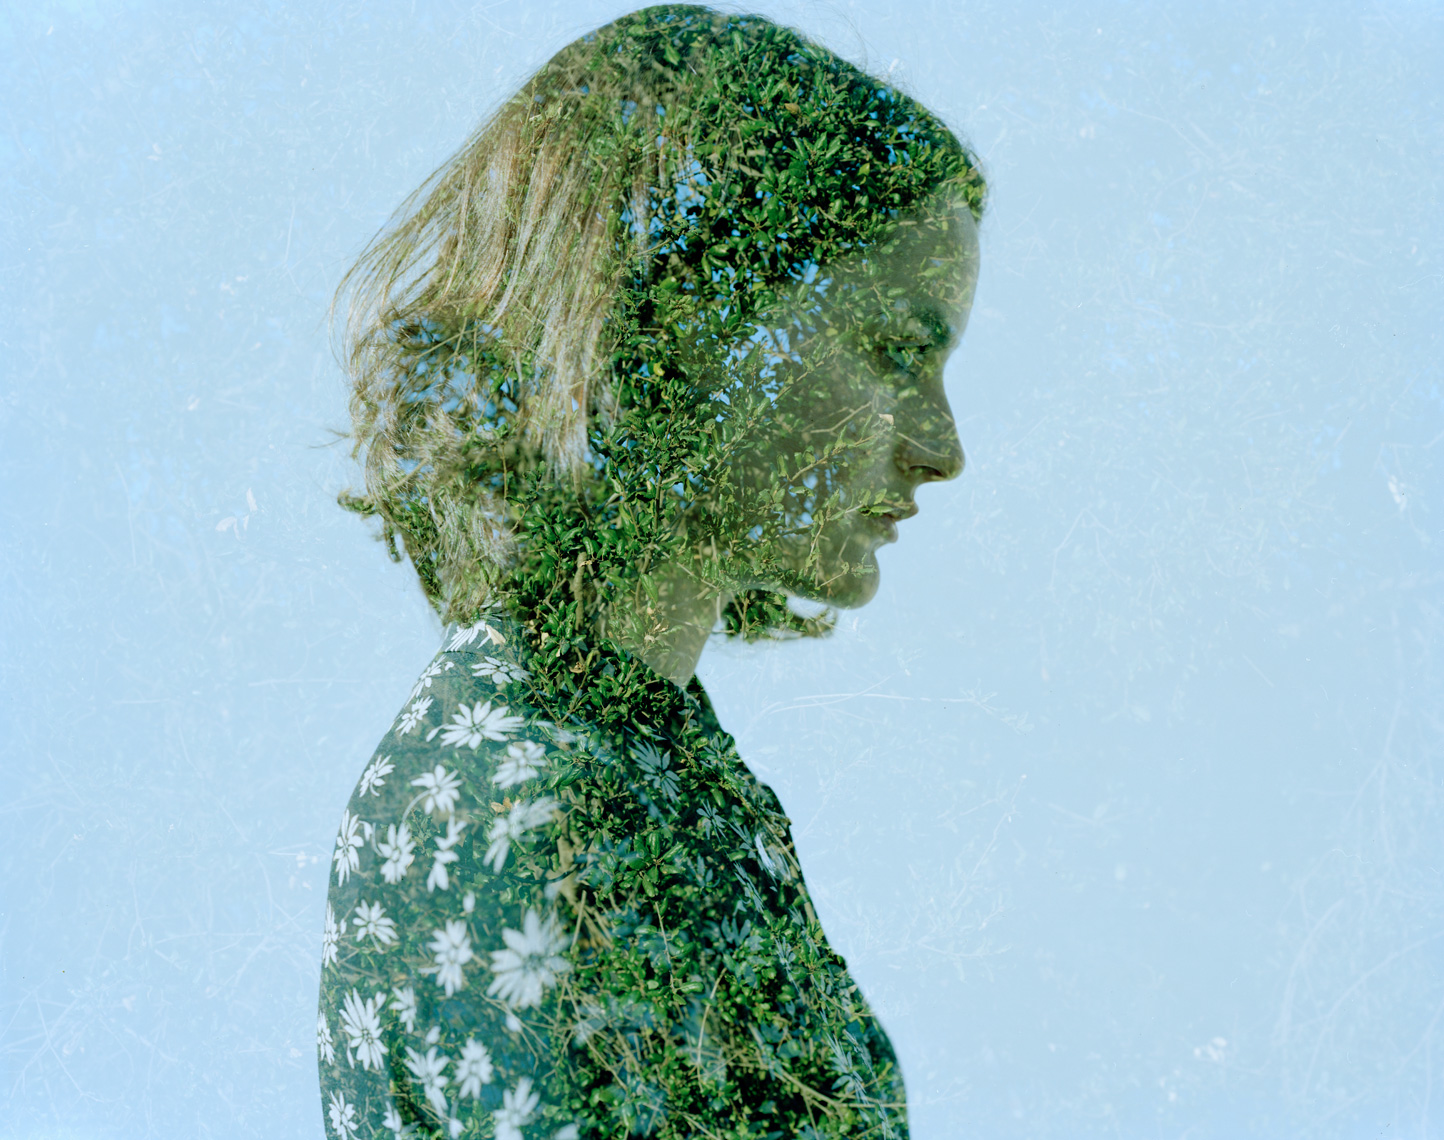 laurel-double-exposure-01-2012.jpg